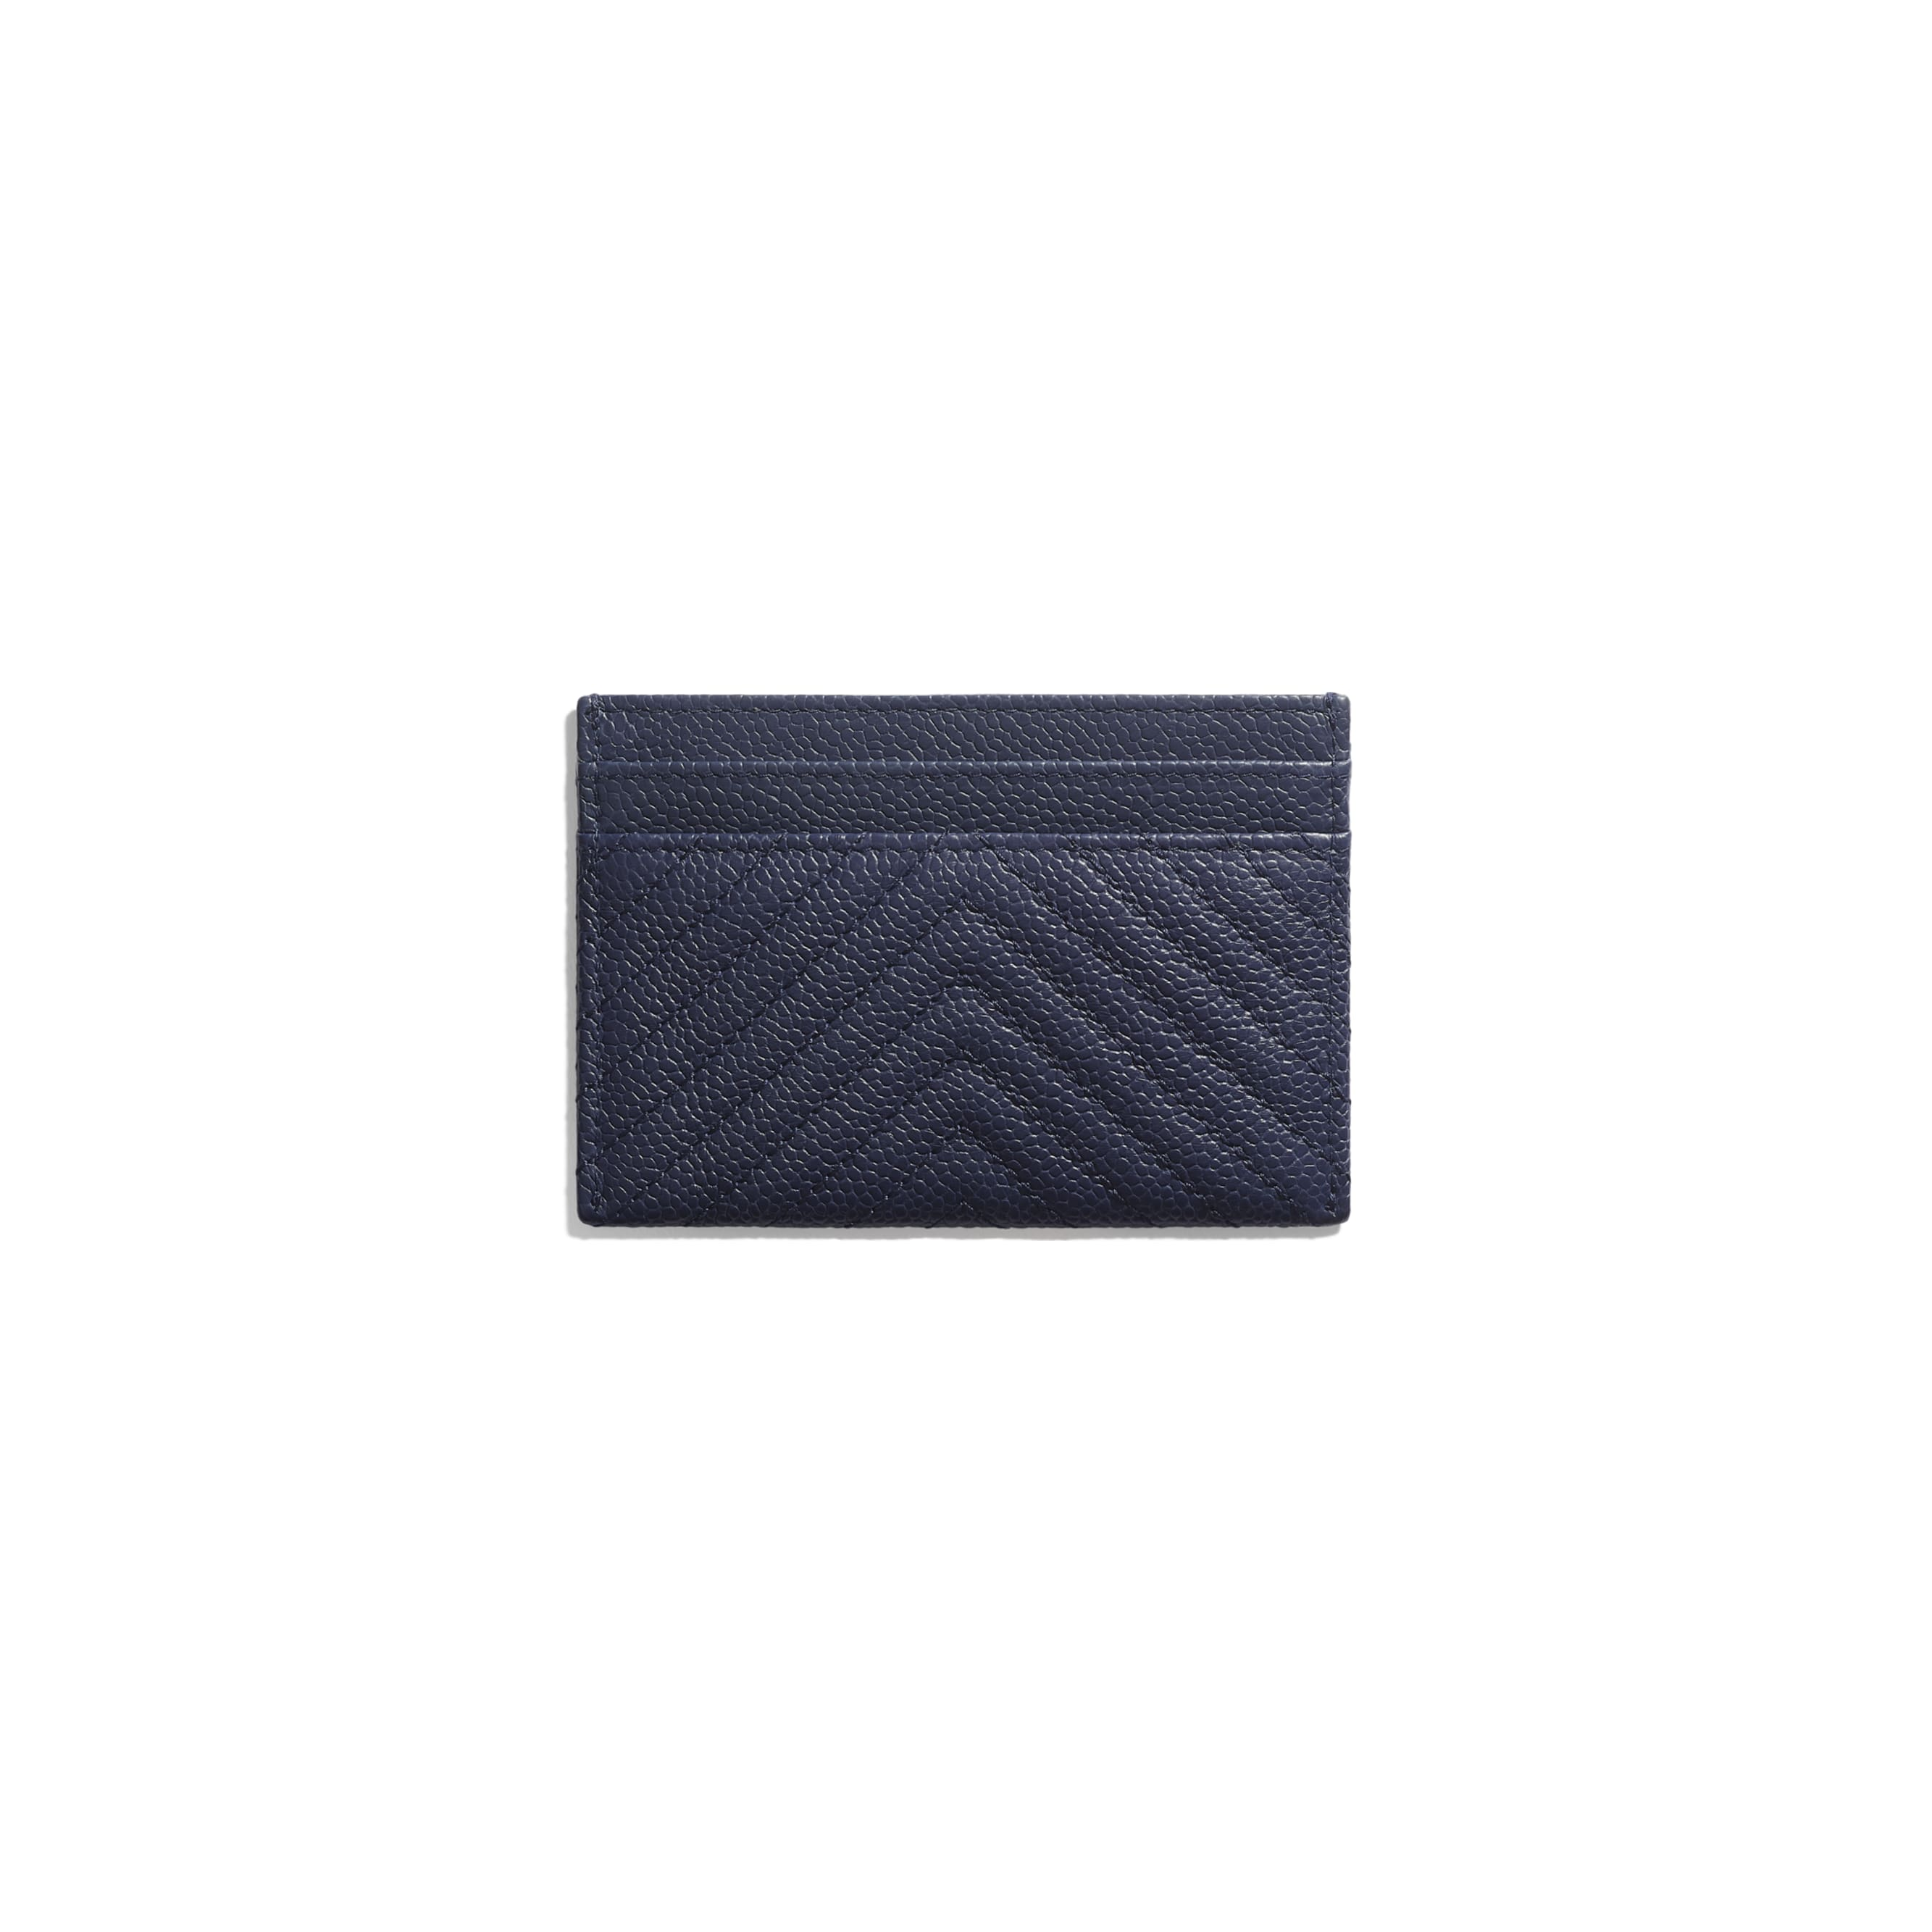 BOY CHANEL Card Holder - Navy Blue - Grained Calfskin & Ruthenium-Finish Metal - Alternative view - see standard sized version